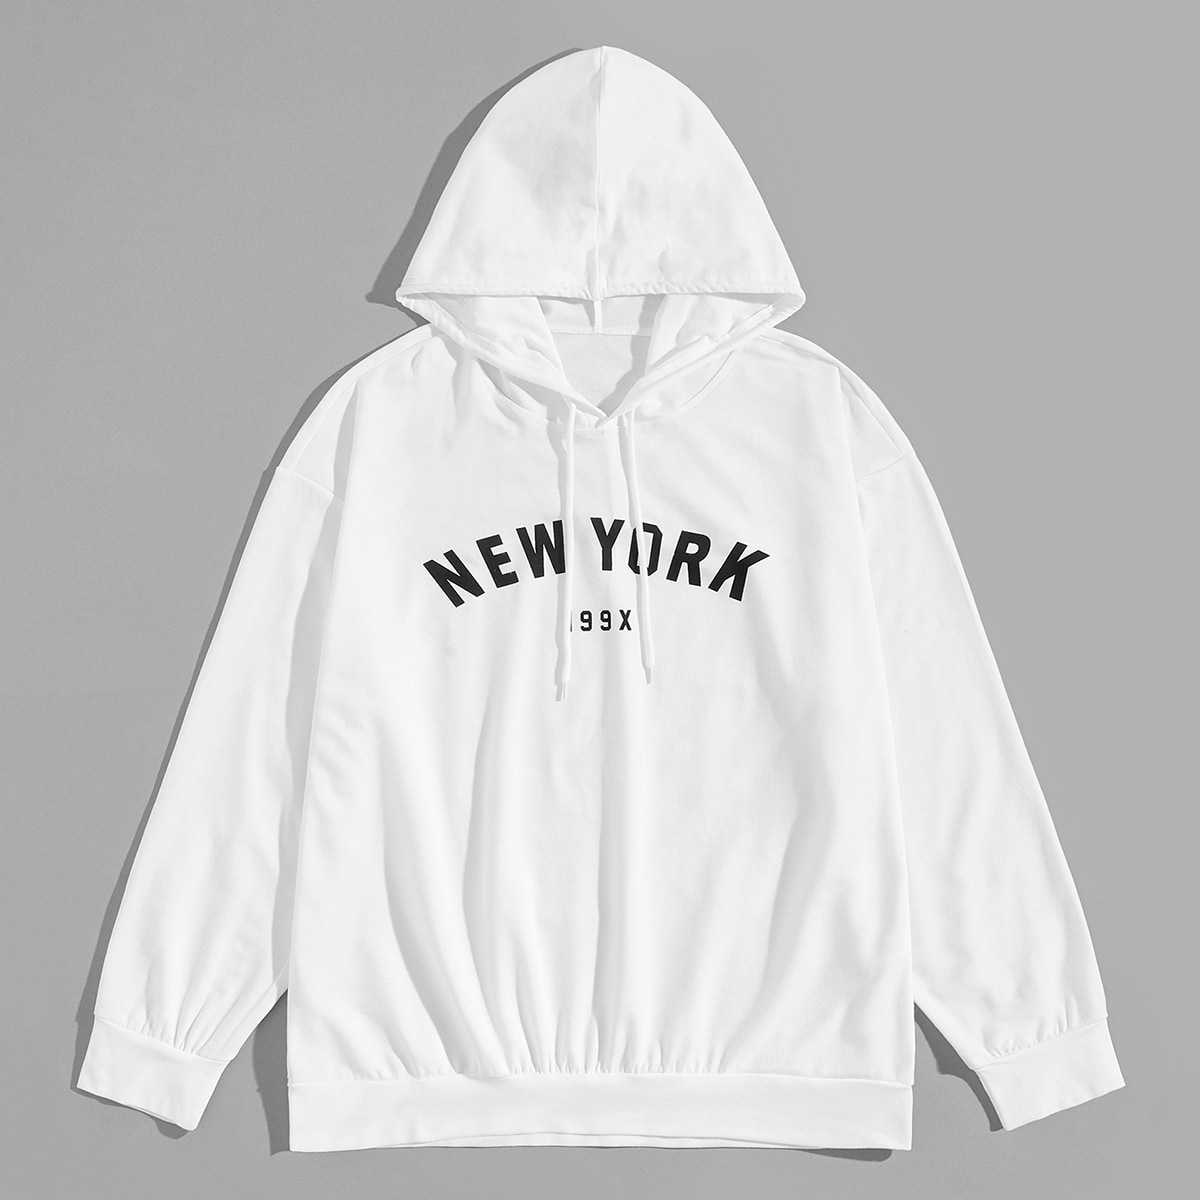 1Plus1 Guys Letter Print Hooded Sweatshirt in White by ROMWE on GOOFASH